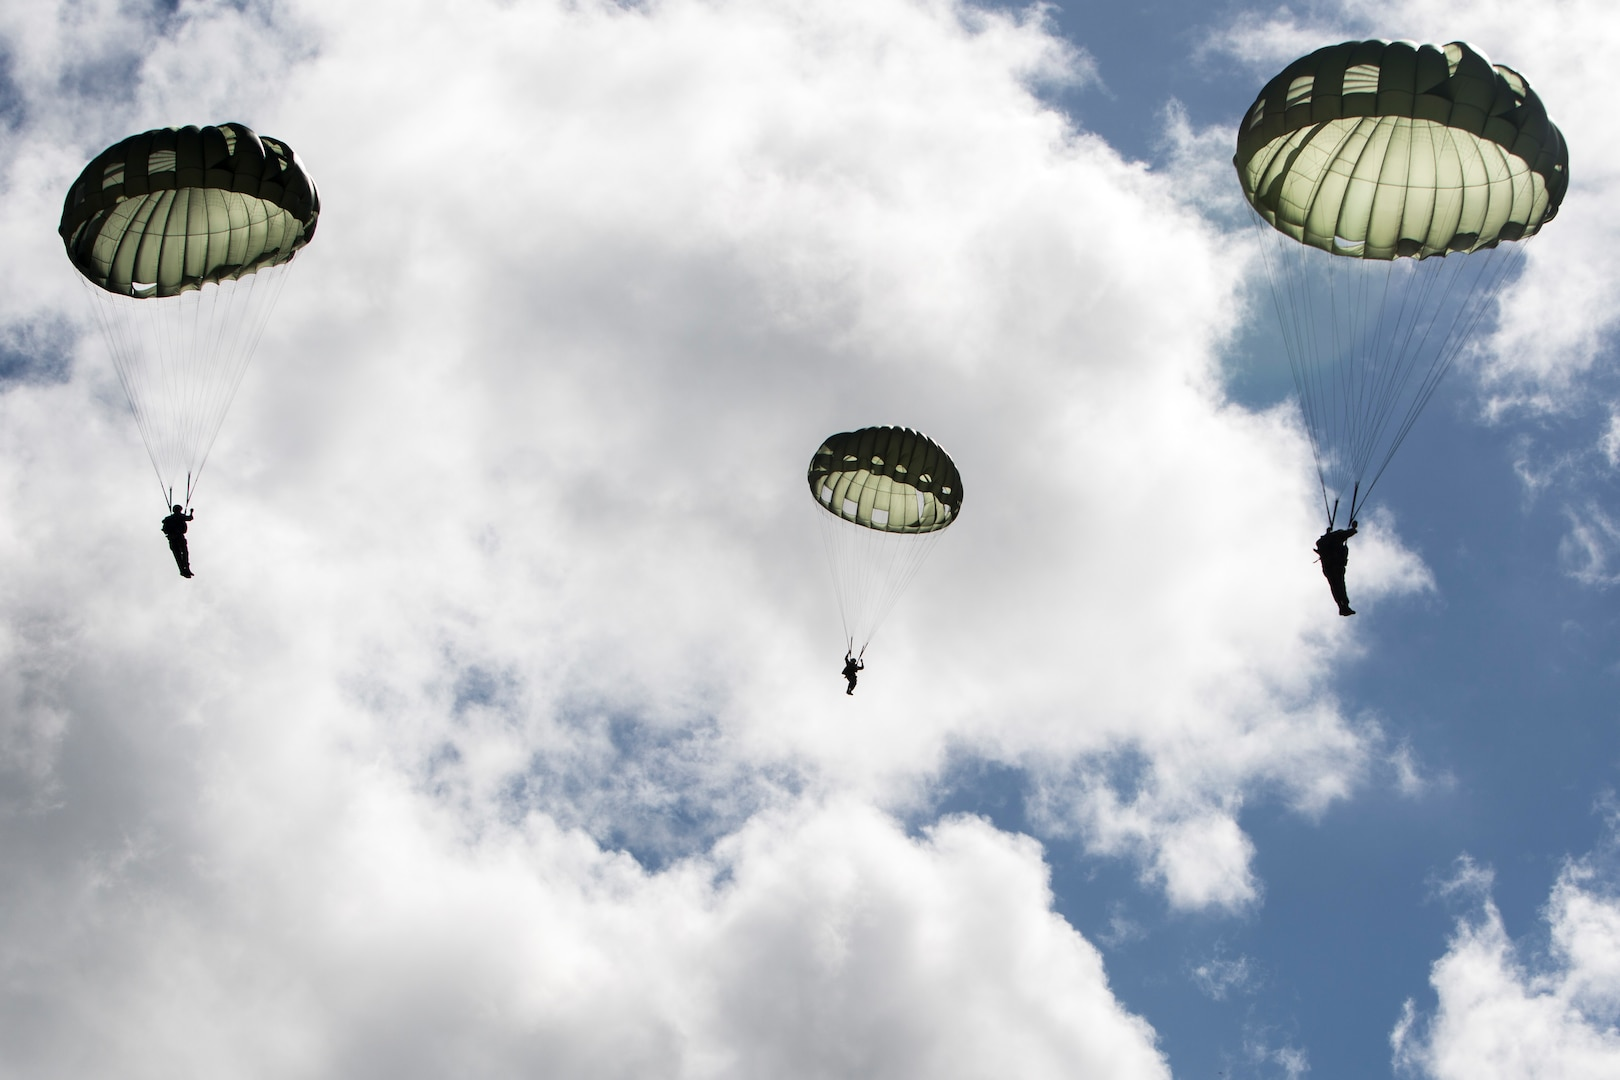 SCHOFIELD BARRACKS – Marines with 4th Force Reconnaissance Company descend after conducting a static line airborne jump from a CH-47 Chinook helicopter at Schofield Barracks, July 14, 2017. The Marines trained with U.S. Army Special Forces to maintain proficiency in completing static line and high altitude free fall airborne jumps. (U.S. Marine Corps photo by Lance Cpl. Isabelo Tabanguil)